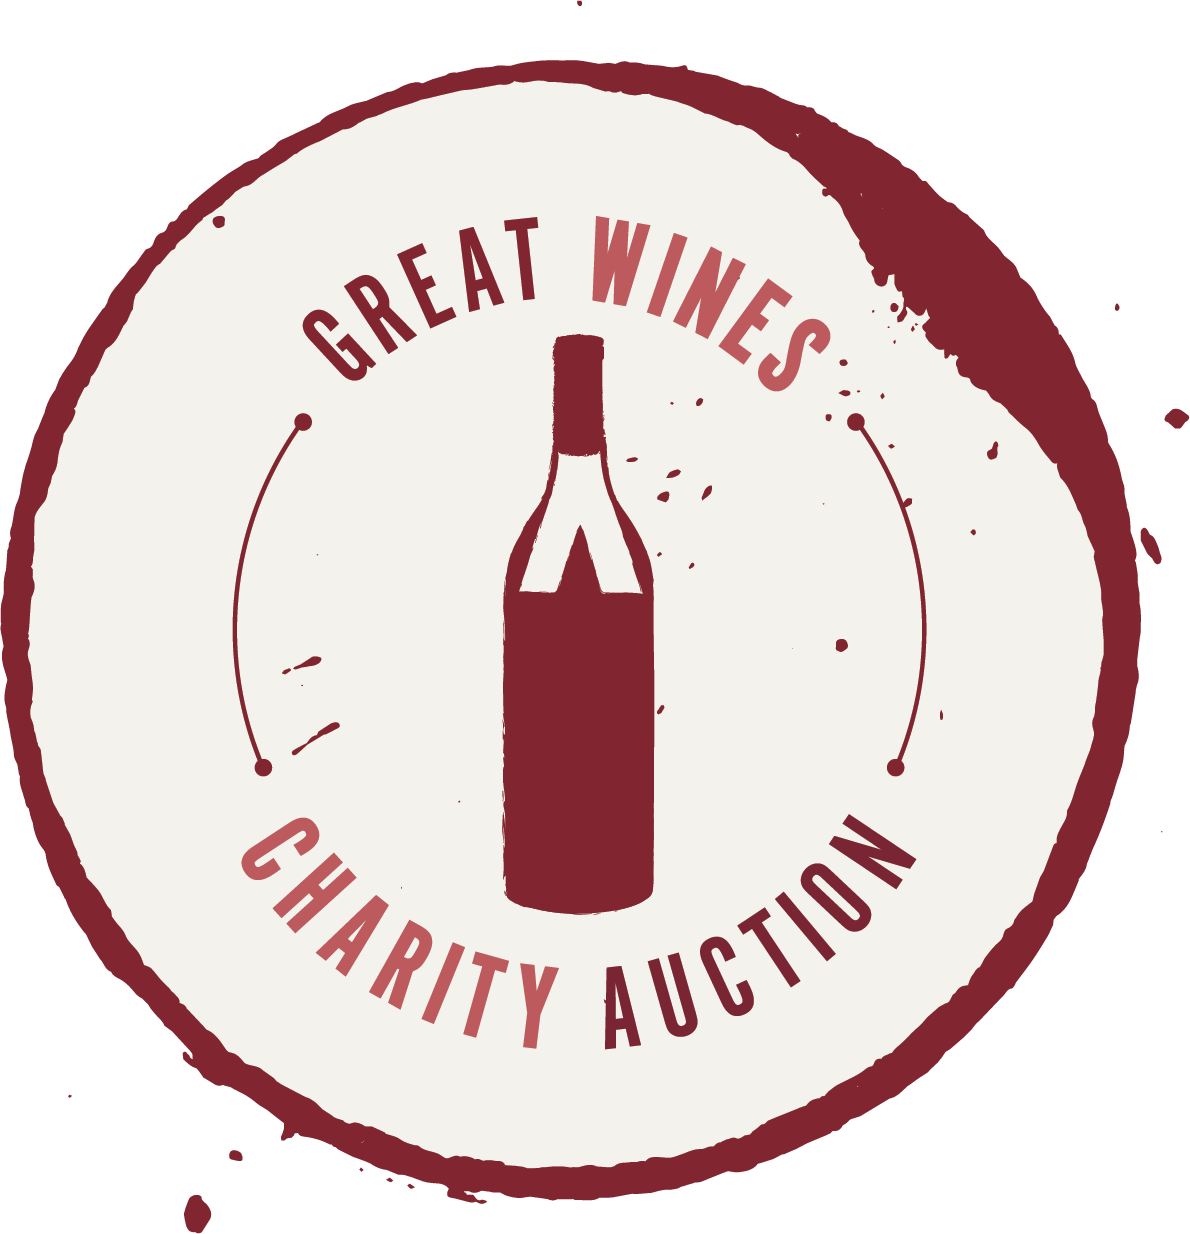 Great Wines Charity Gala